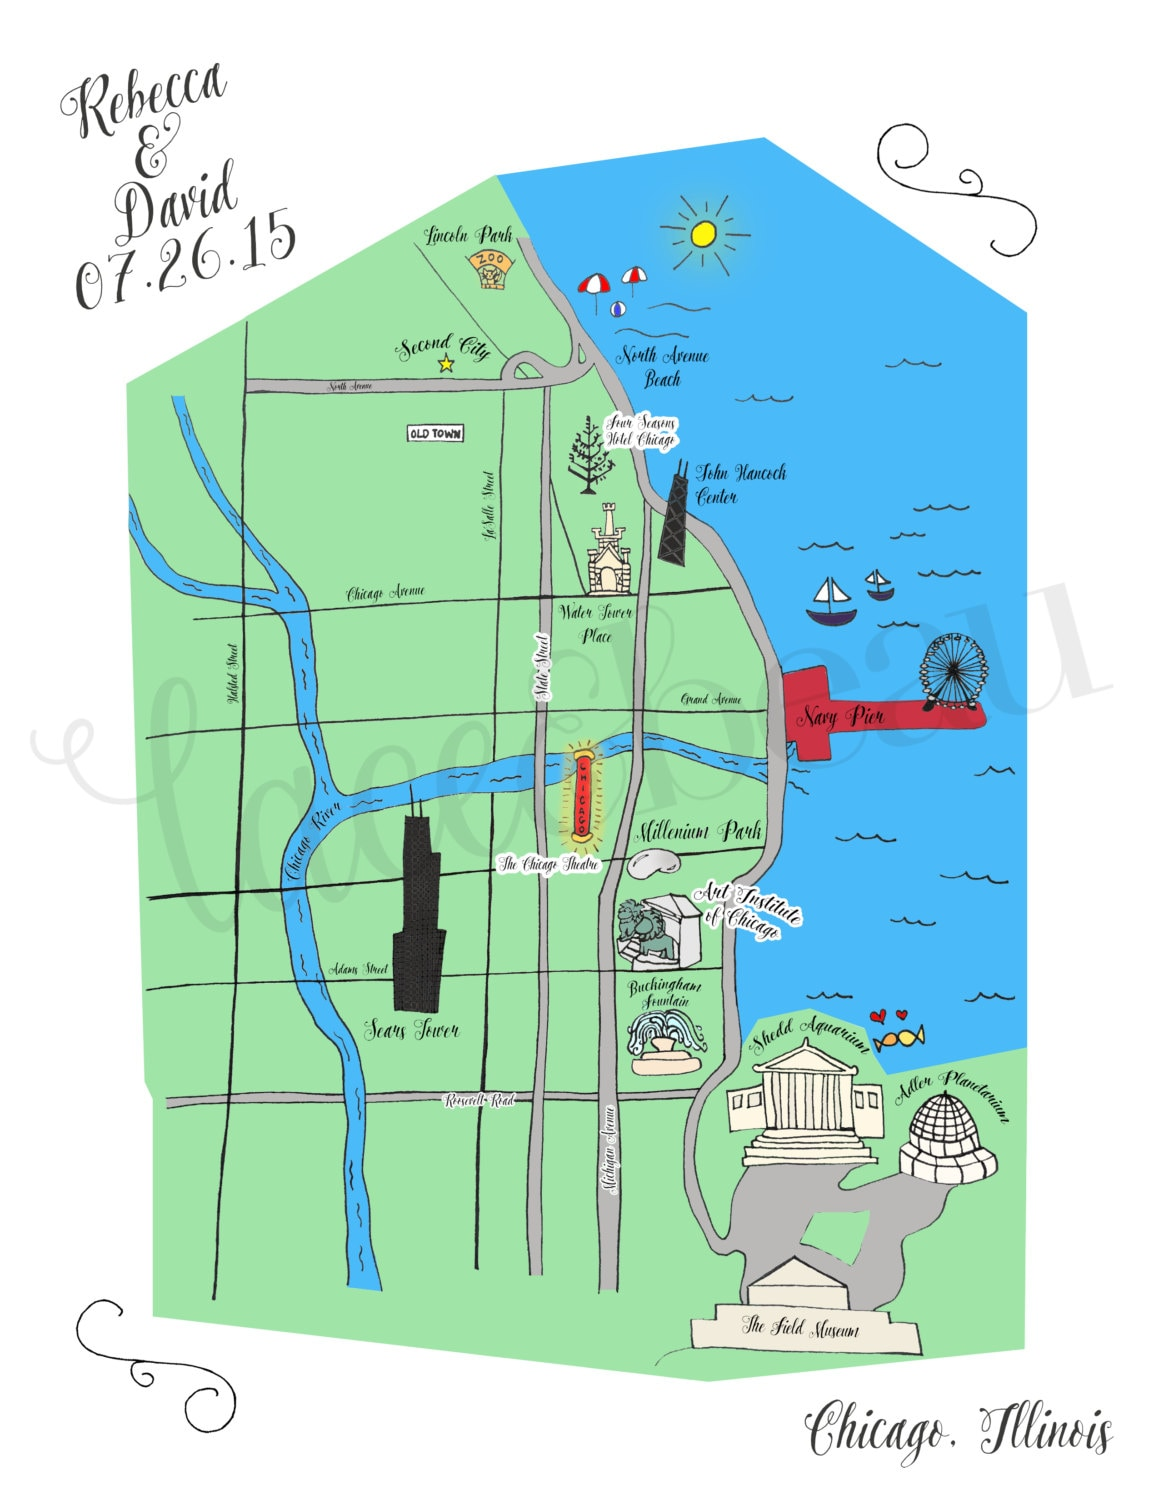 Custom Wedding Map Chicago Wedding Map Save The Date Wedding - Chicago map north avenue beach